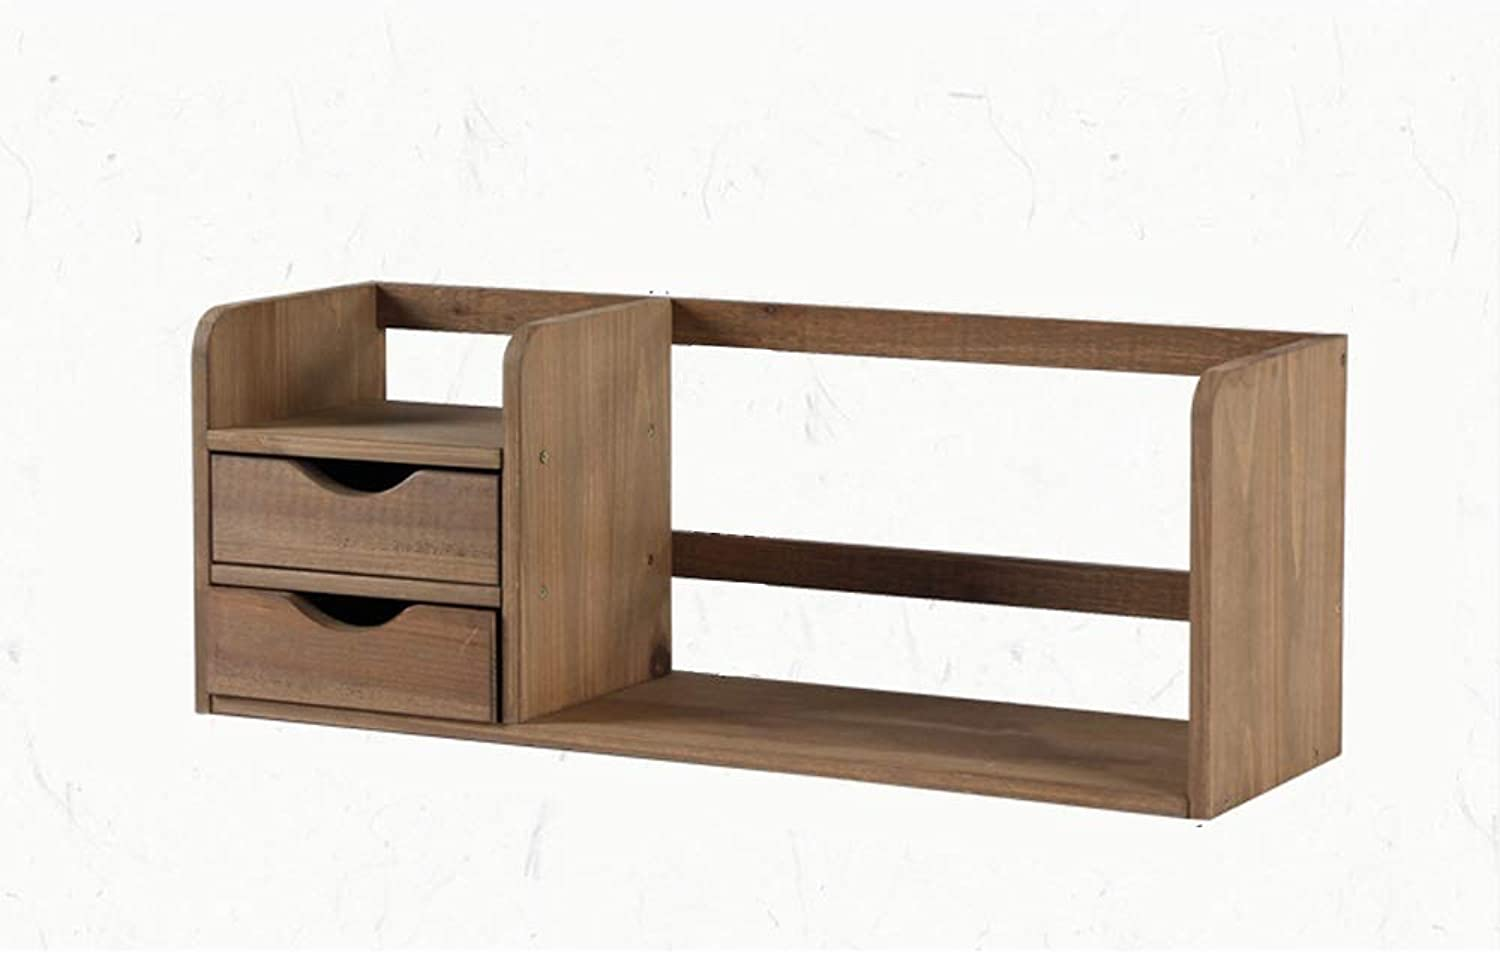 Solid Wood Desktop Simple Storage Single Layer Double Layer Two Size Optional Home Work Small Bookshelf, Brown, Suitable for Office Workers, Student Families, etc. (Design   Double Layer)